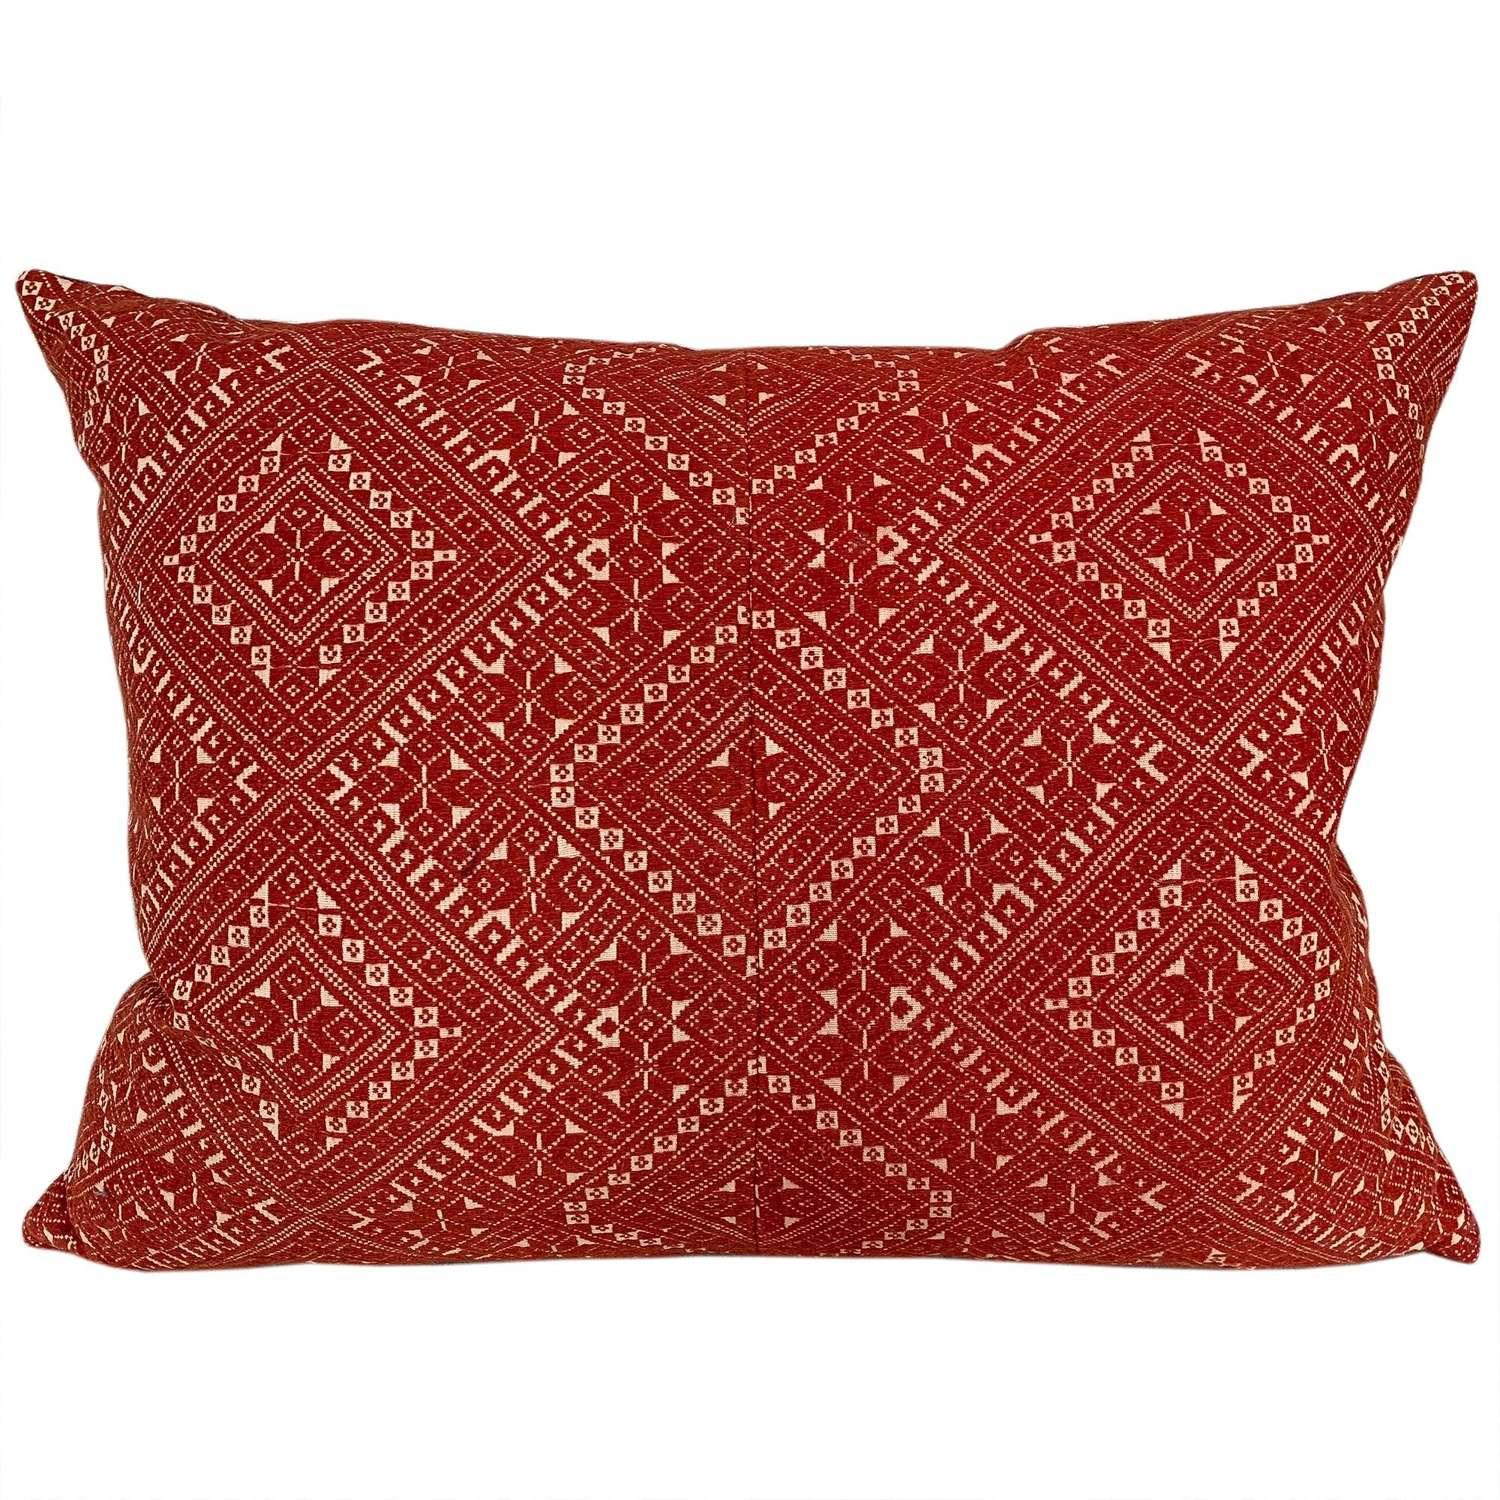 Large Dai wedding blanket cushions